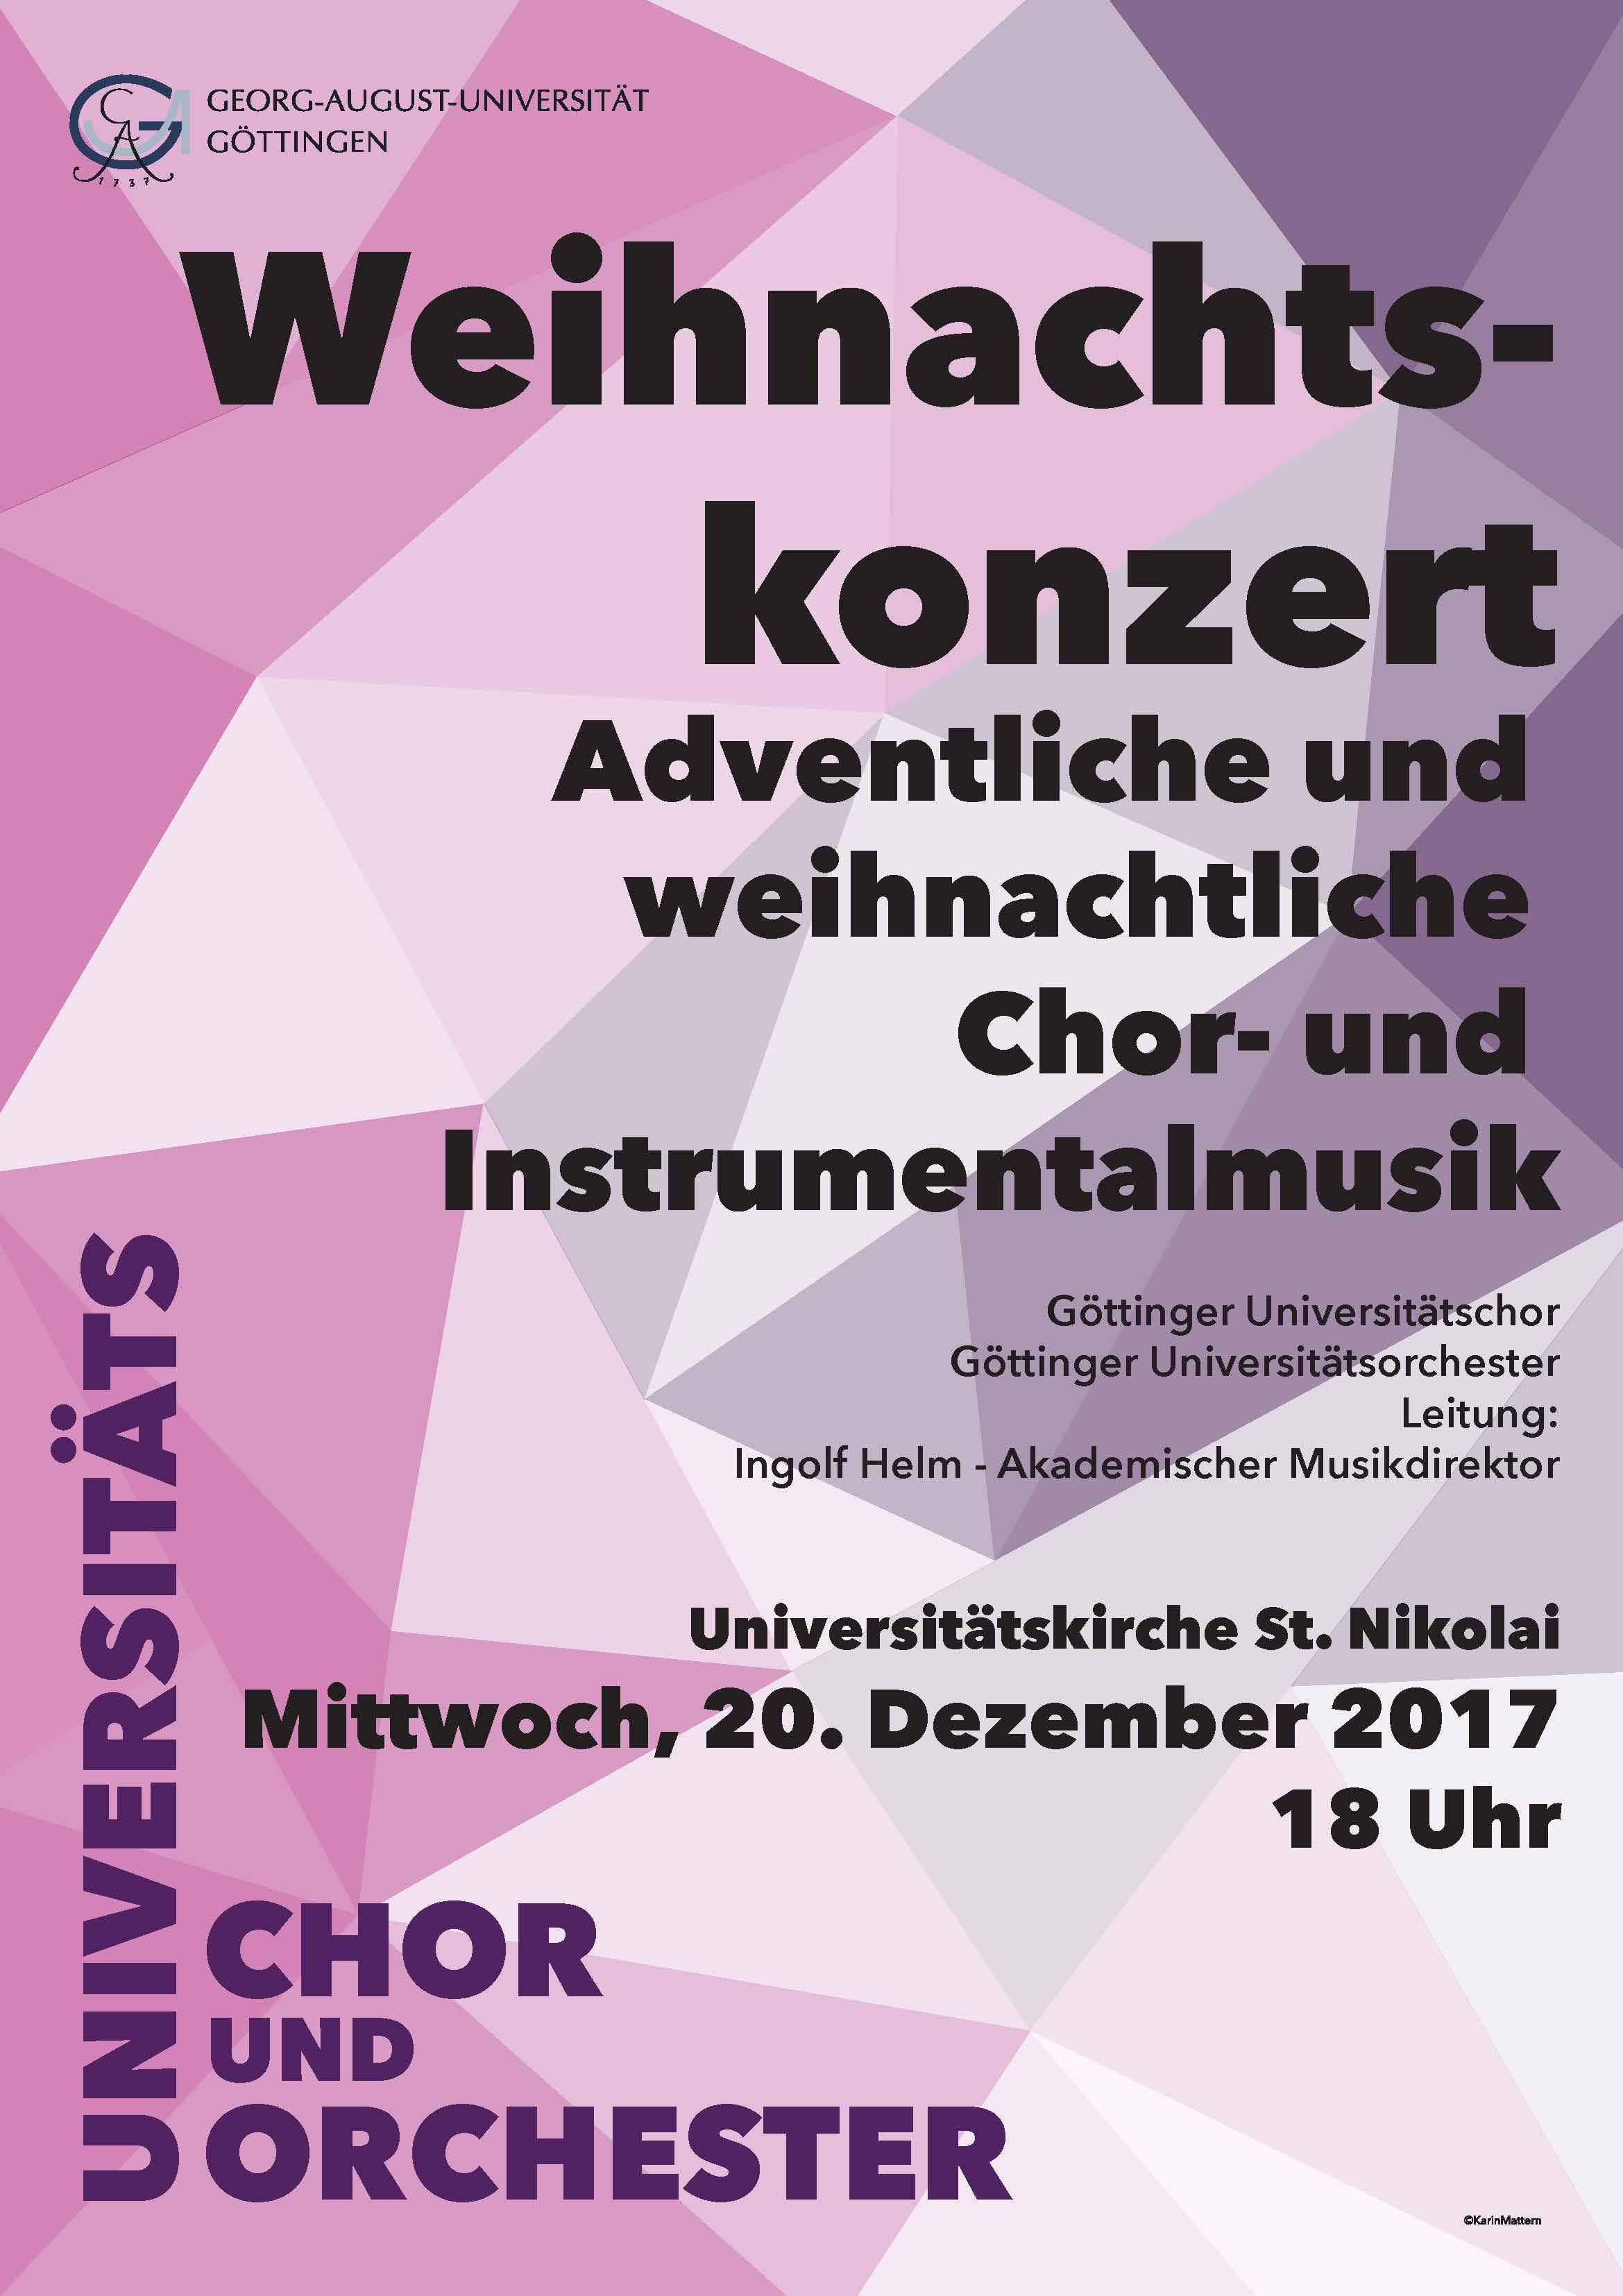 2017-12-20 Uni Weihnachtskonzert